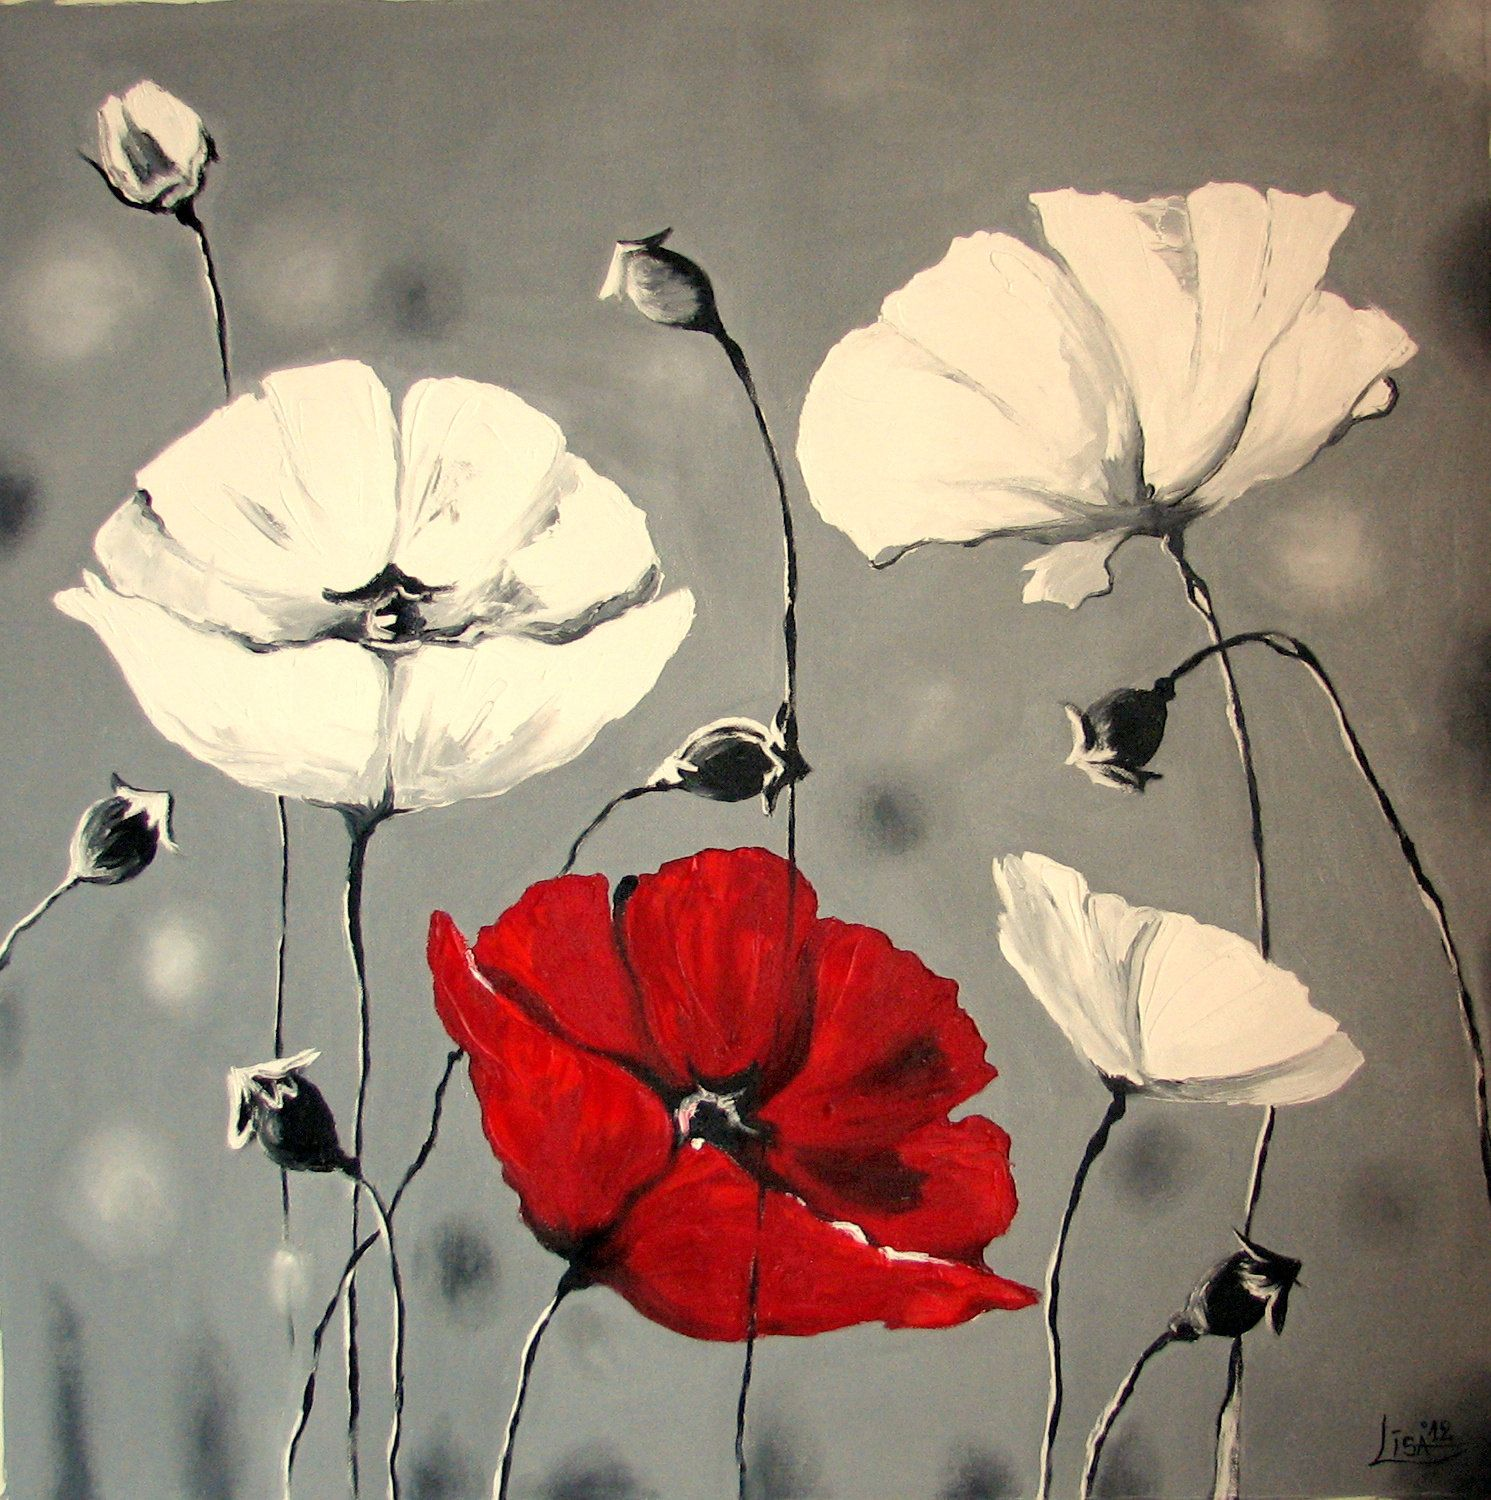 Acrylic Oil Painting White Red Poppies On High Quality Canvas Contemporary Art Huge 80 X 80 Xxxl 390 00 Via Etsy Pinturas Abstractas